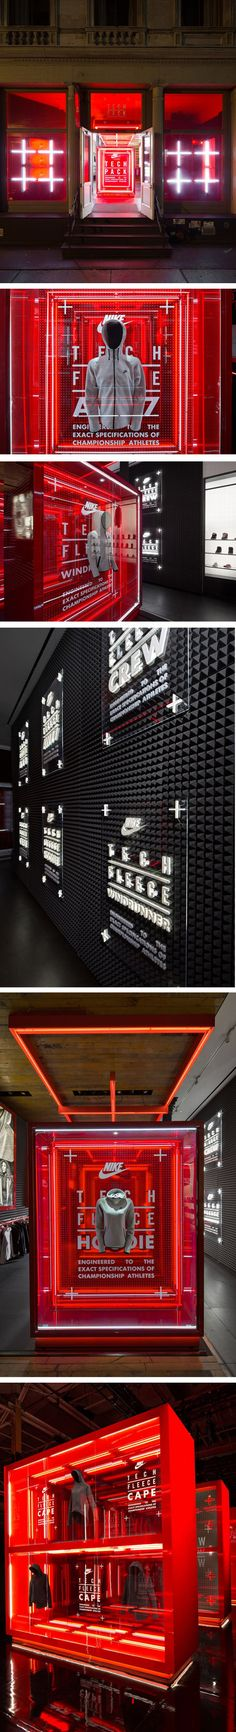 Nike flagship store by Nike  WeShouldDoItAll  Corey Yurkovich, New York City.